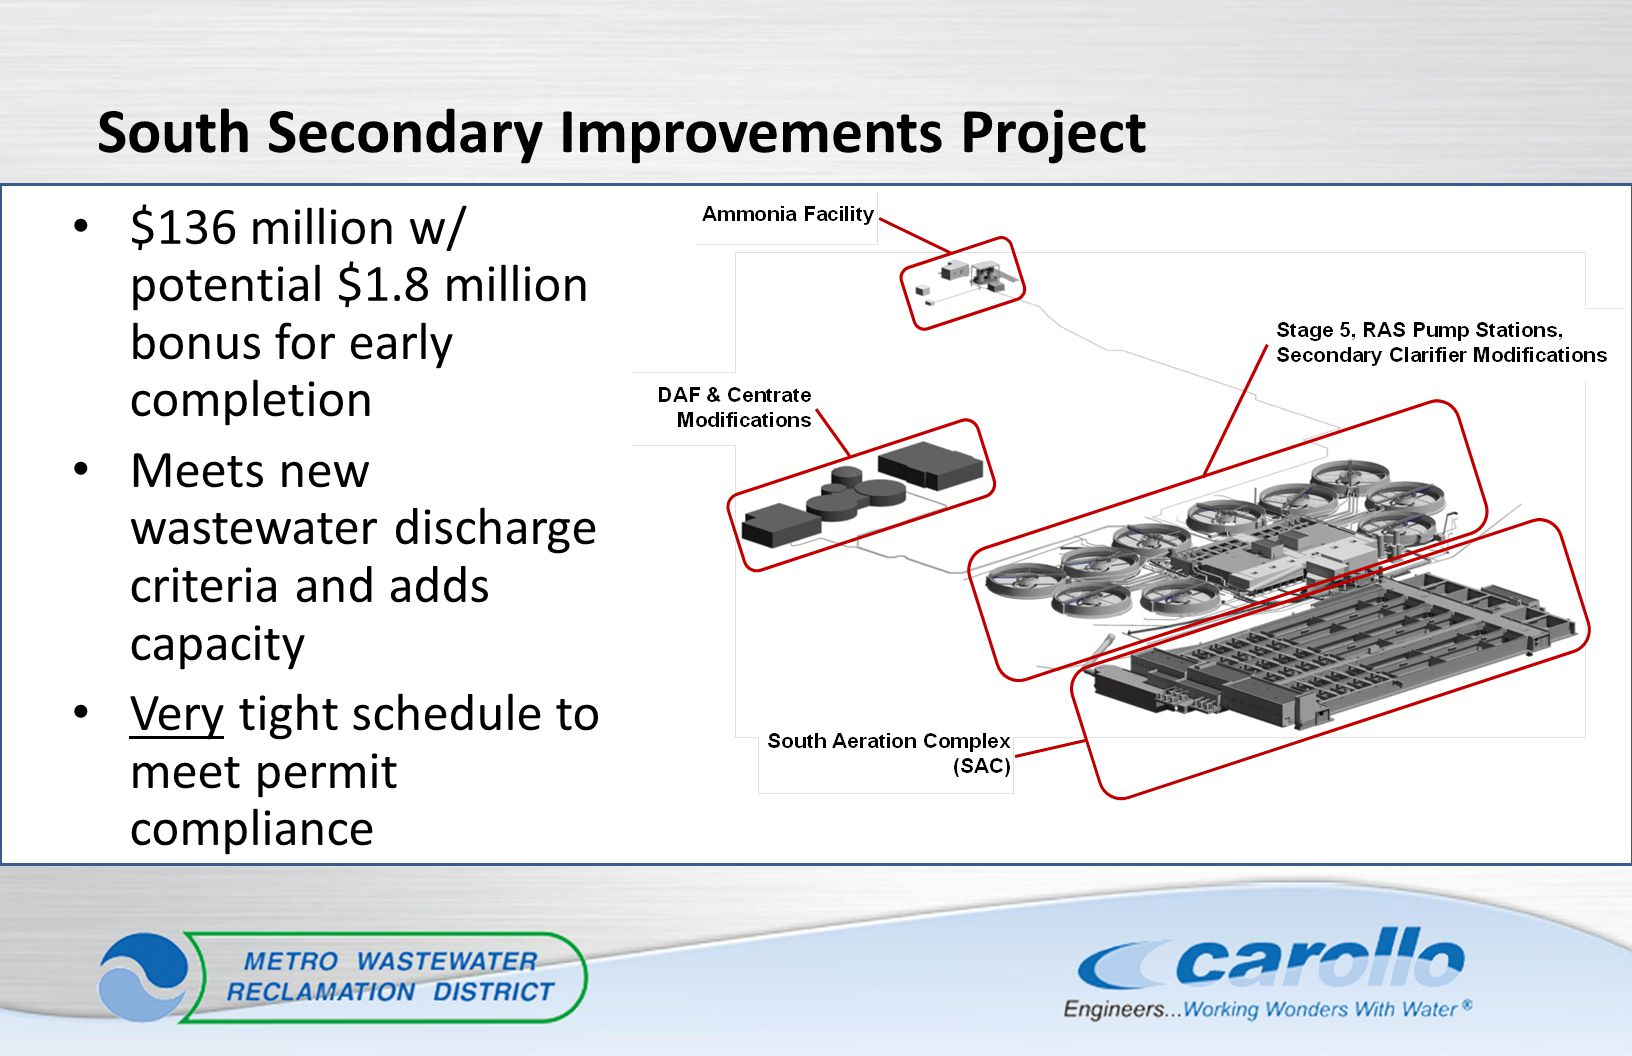 $136 million w/ potential $1.8 million bonus for early completion Meets new wastewater discharge criteria and adds capacity Very tight schedule to mee